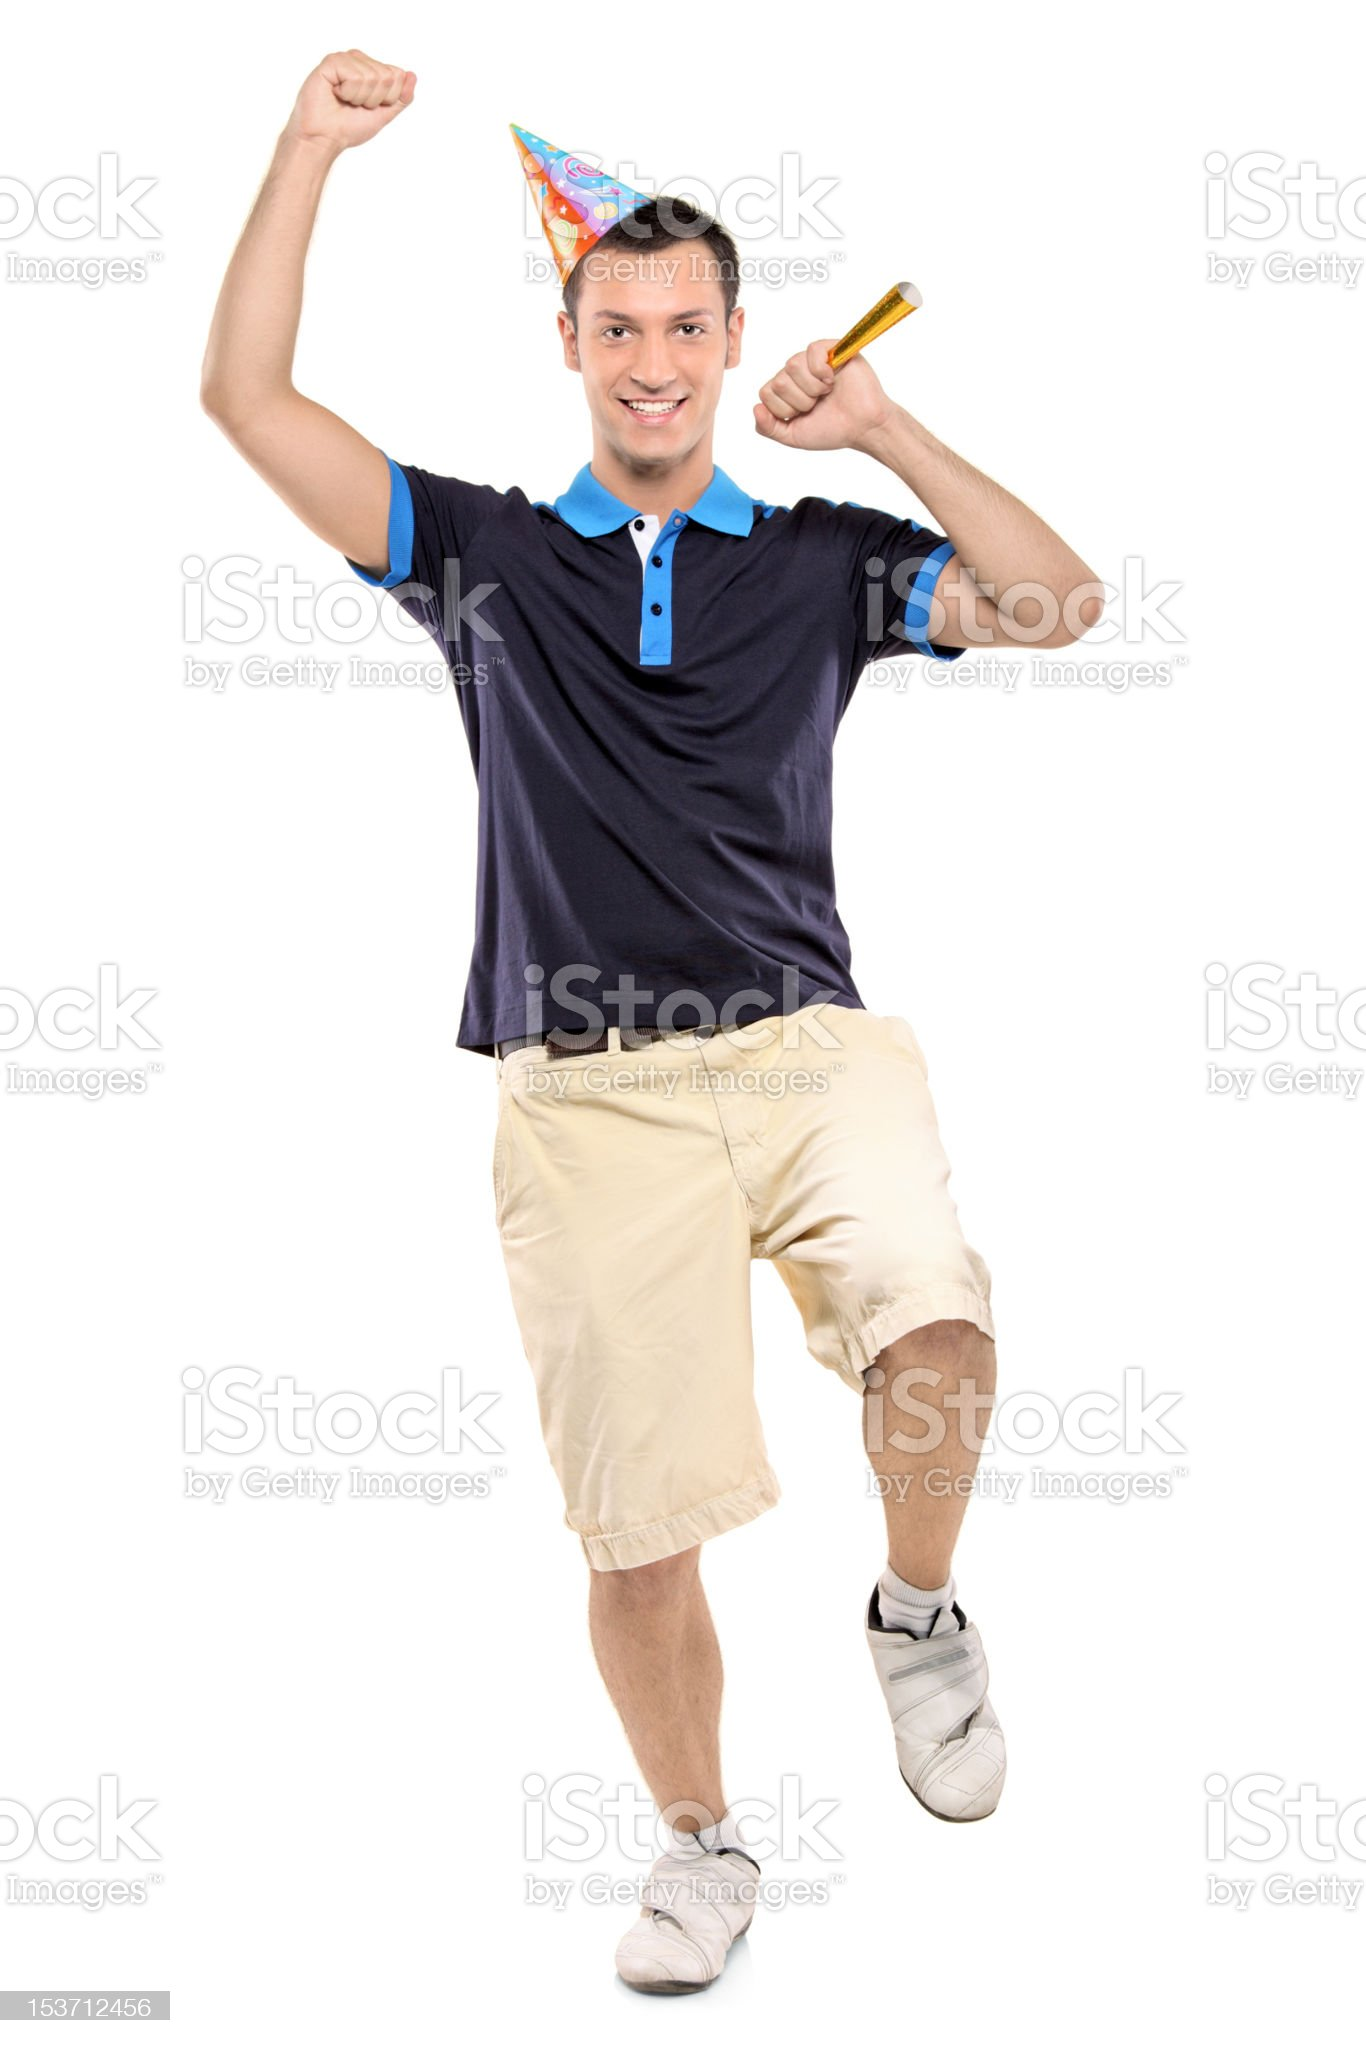 Full length portrait of a happy man wearing party hat royalty-free stock photo